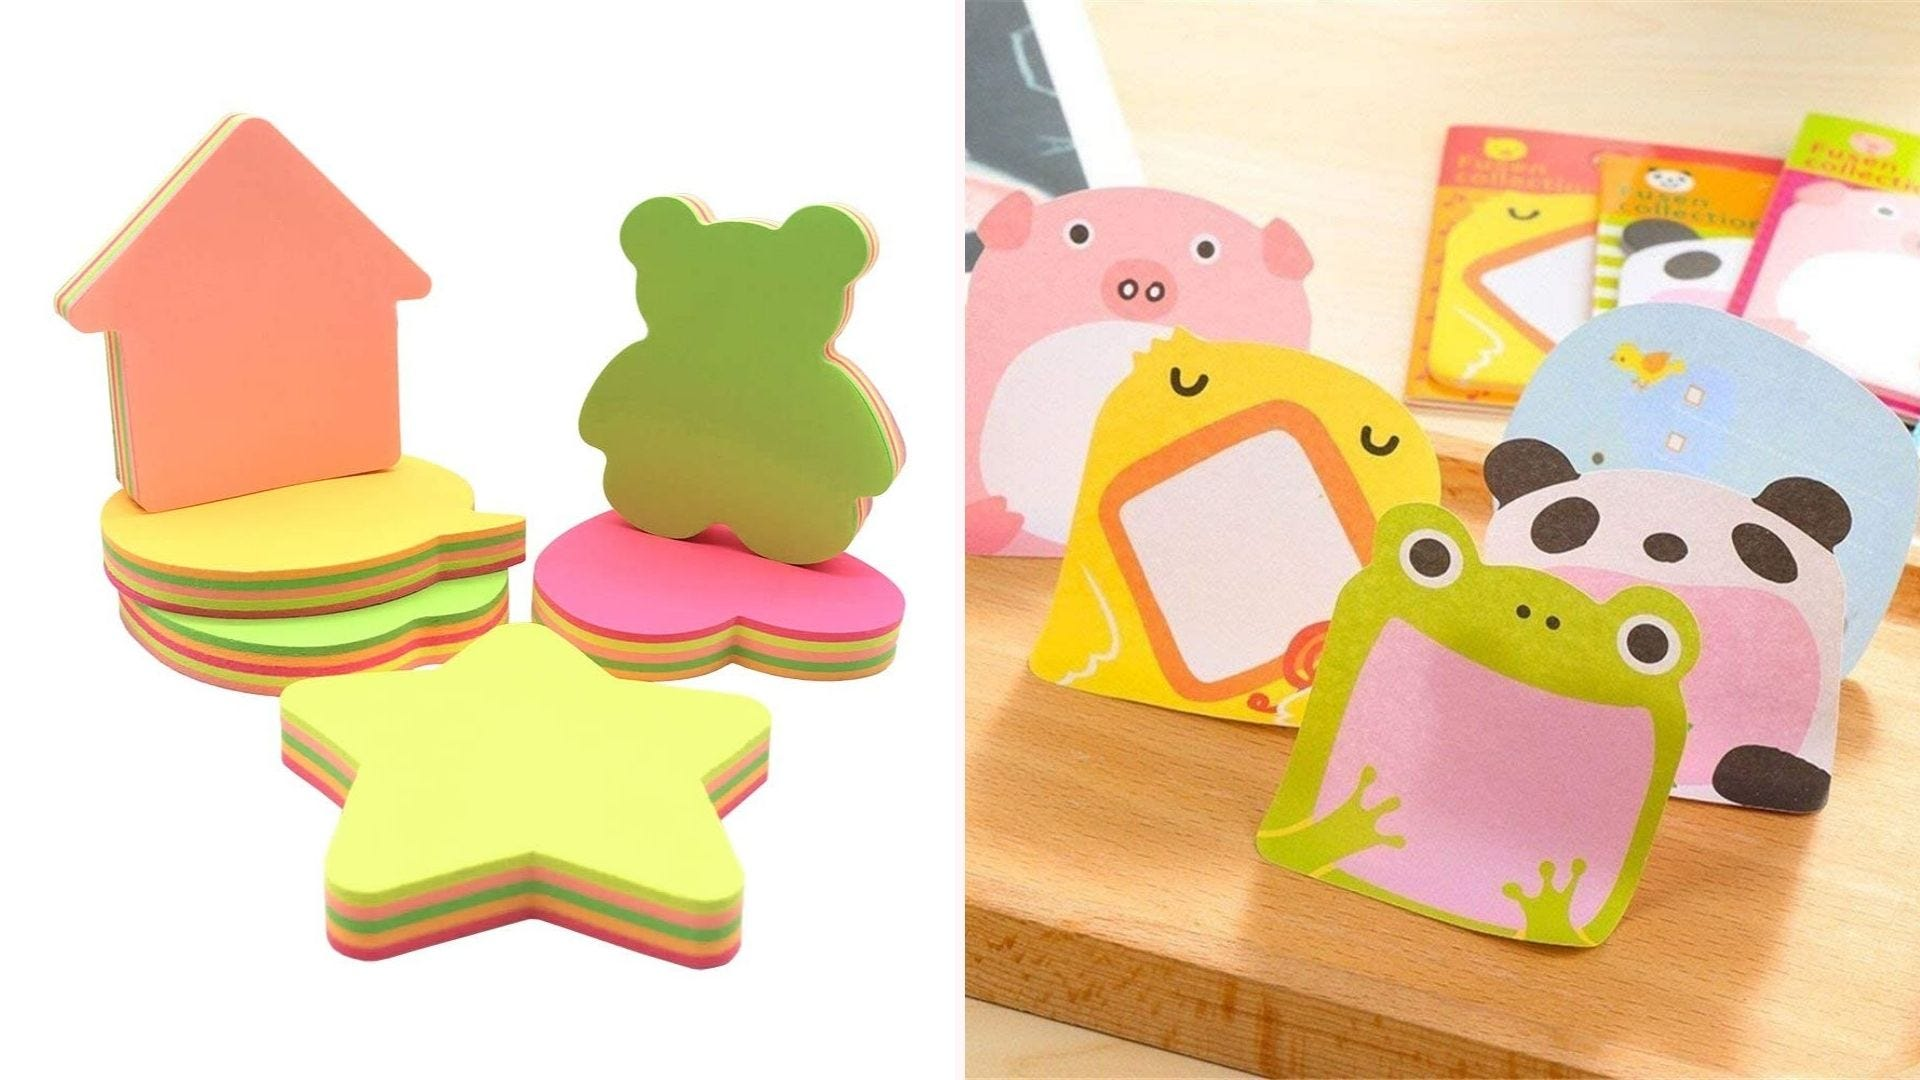 On the left, stacks of sticky note pads shaped like stars, bears, and houses. On the right, more notepads shaped and illustrated like animals.